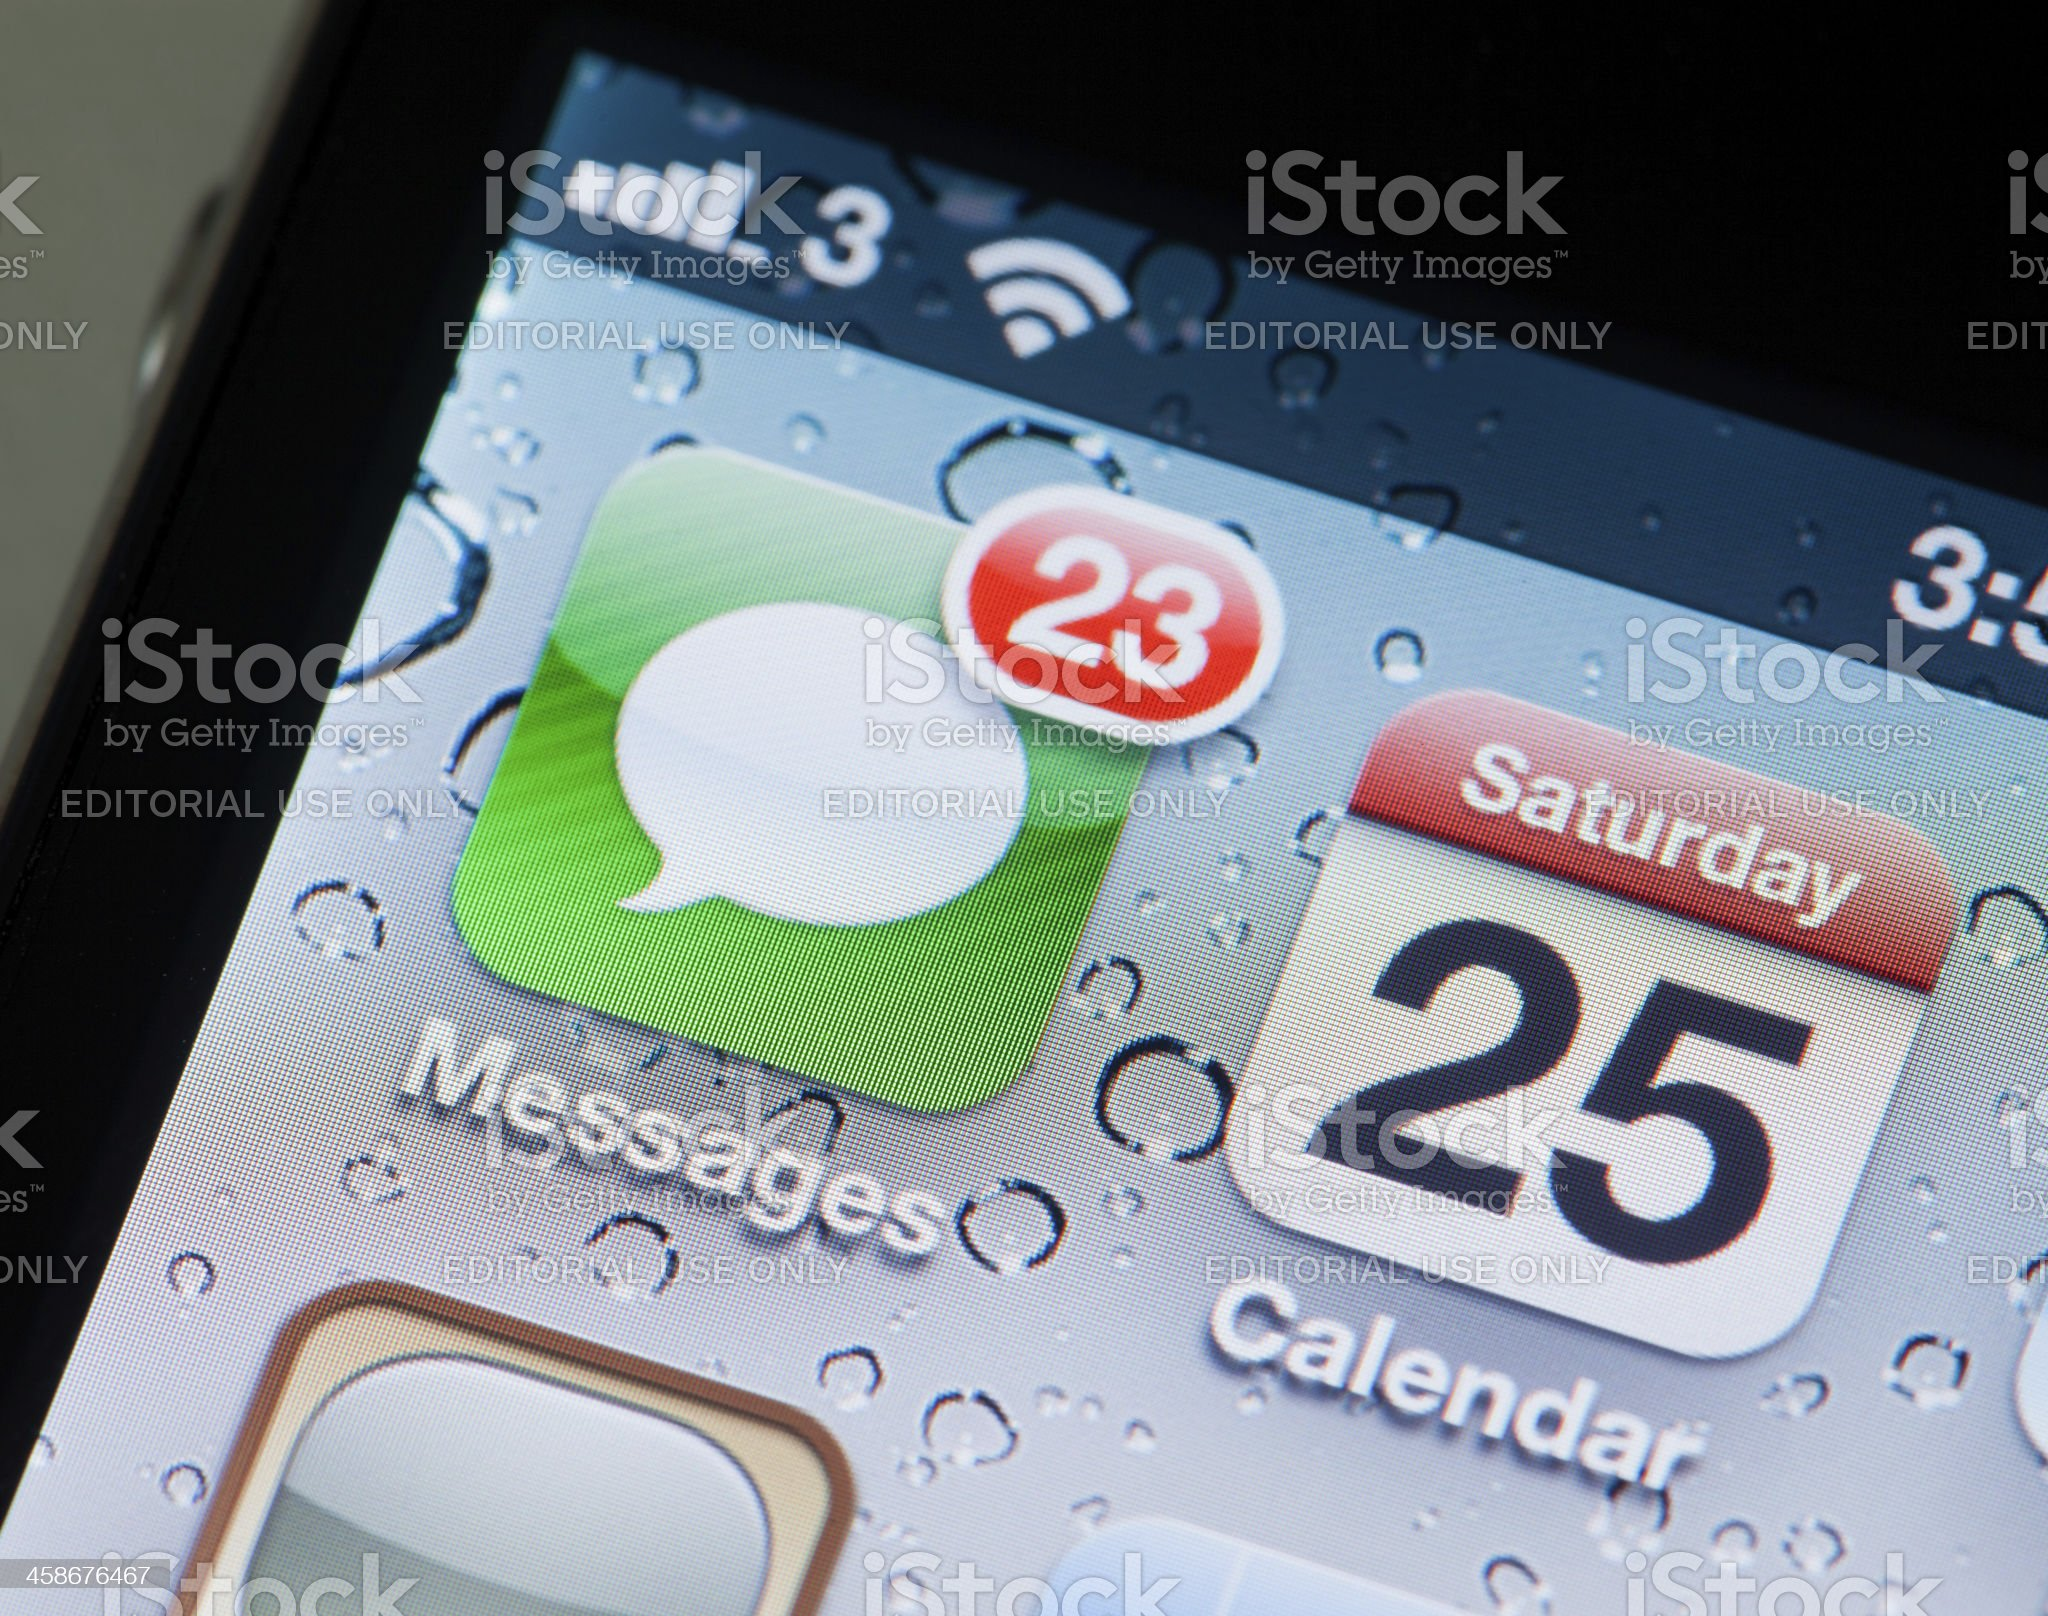 Messages app on iPhone royalty-free stock photo